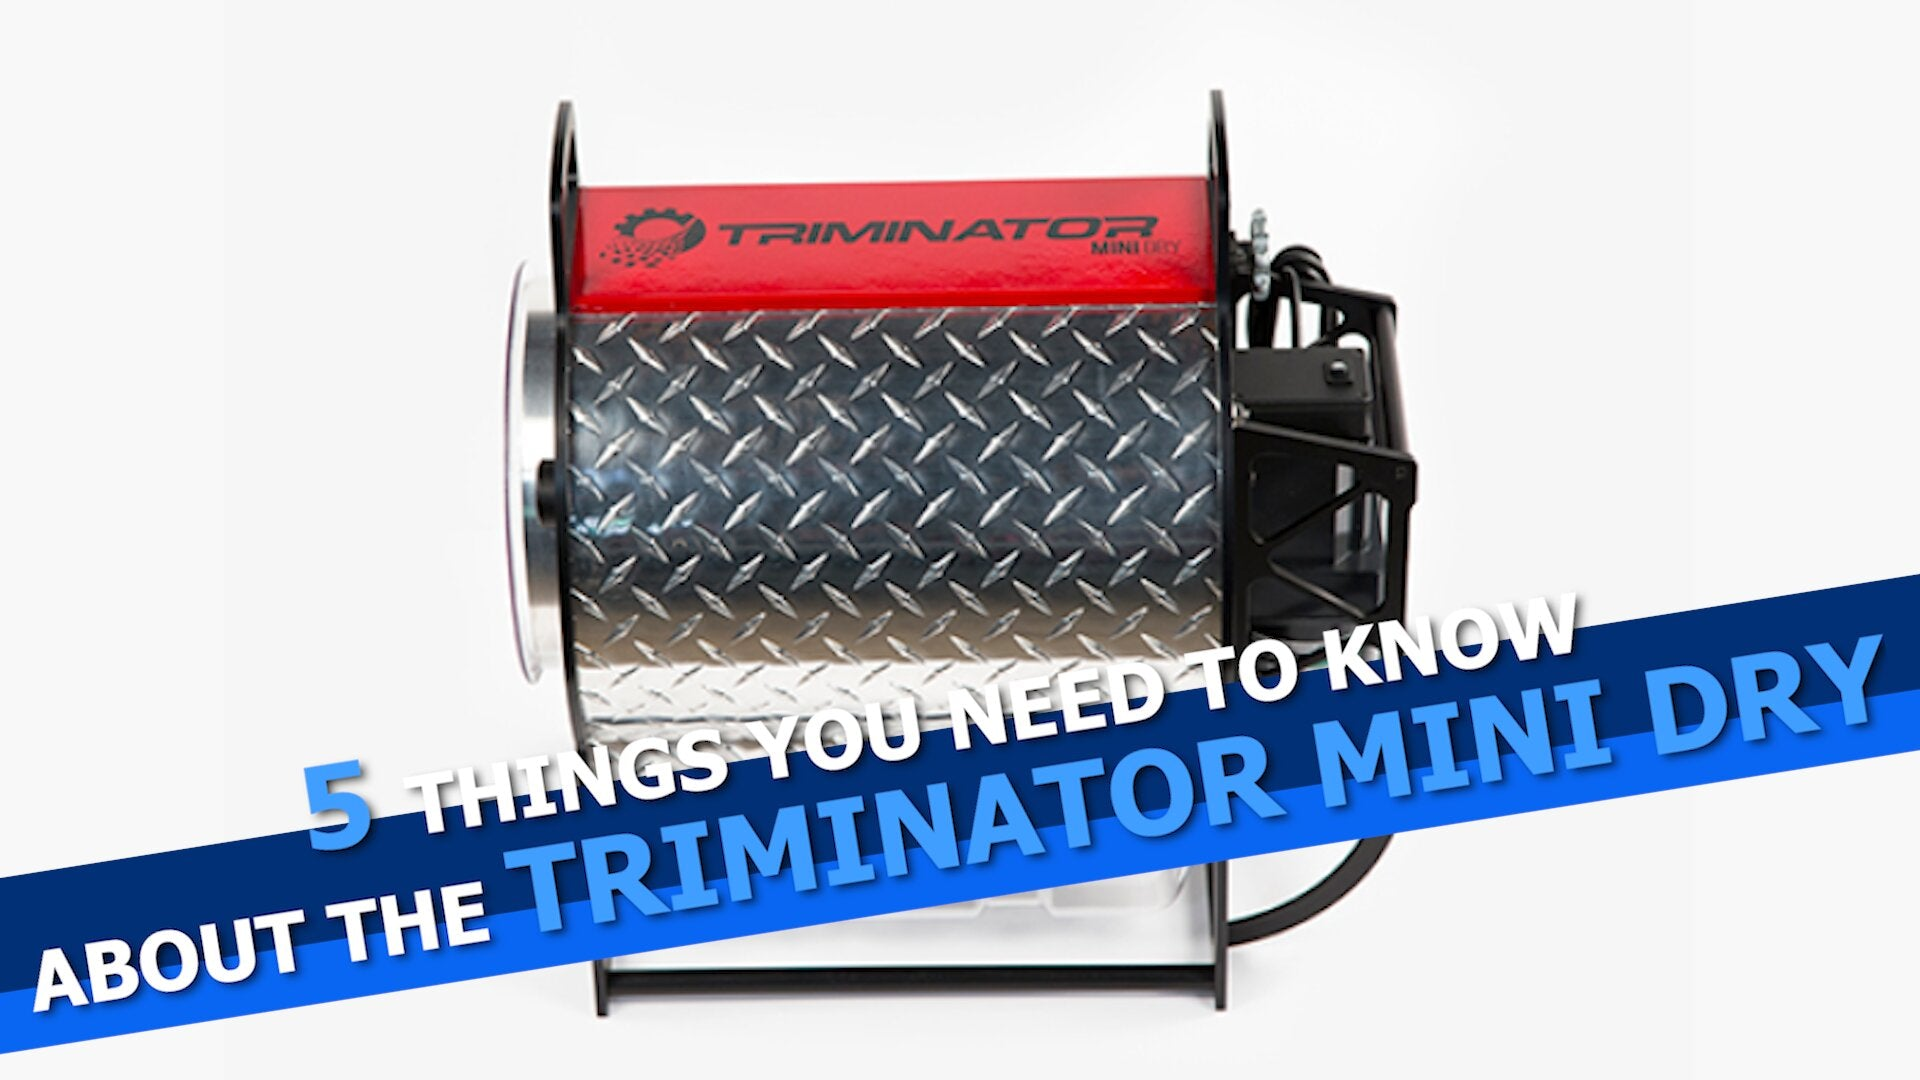 5 Things You Need To Know About The Triminator Mini Dry Bud Trimmer